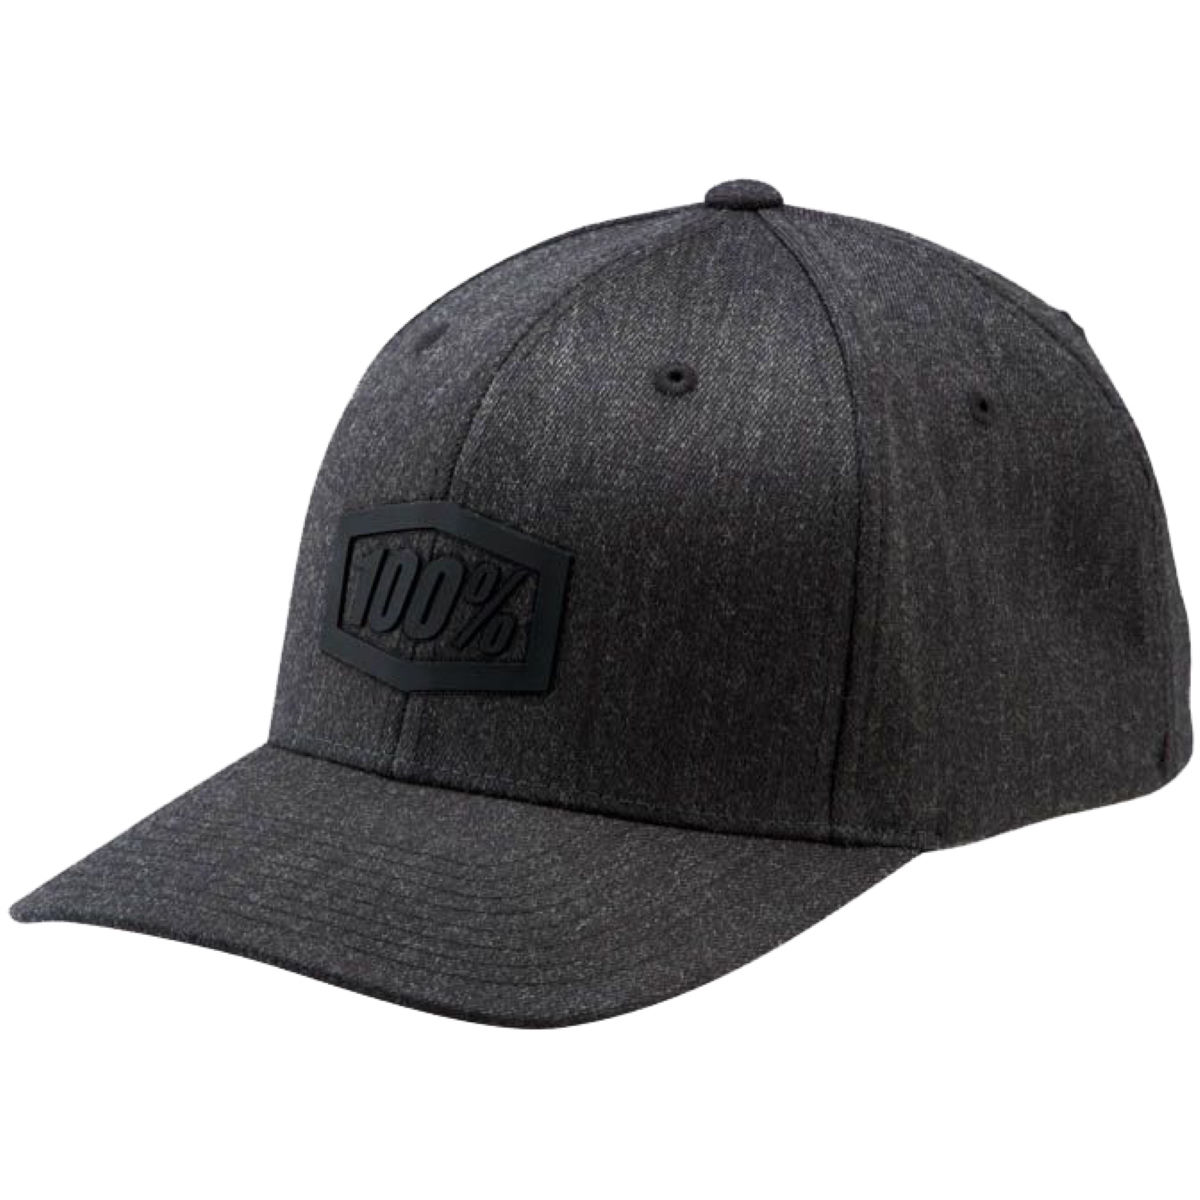 100 trek flexfit cap internal charcoal heather aw17 20061 052 17 0